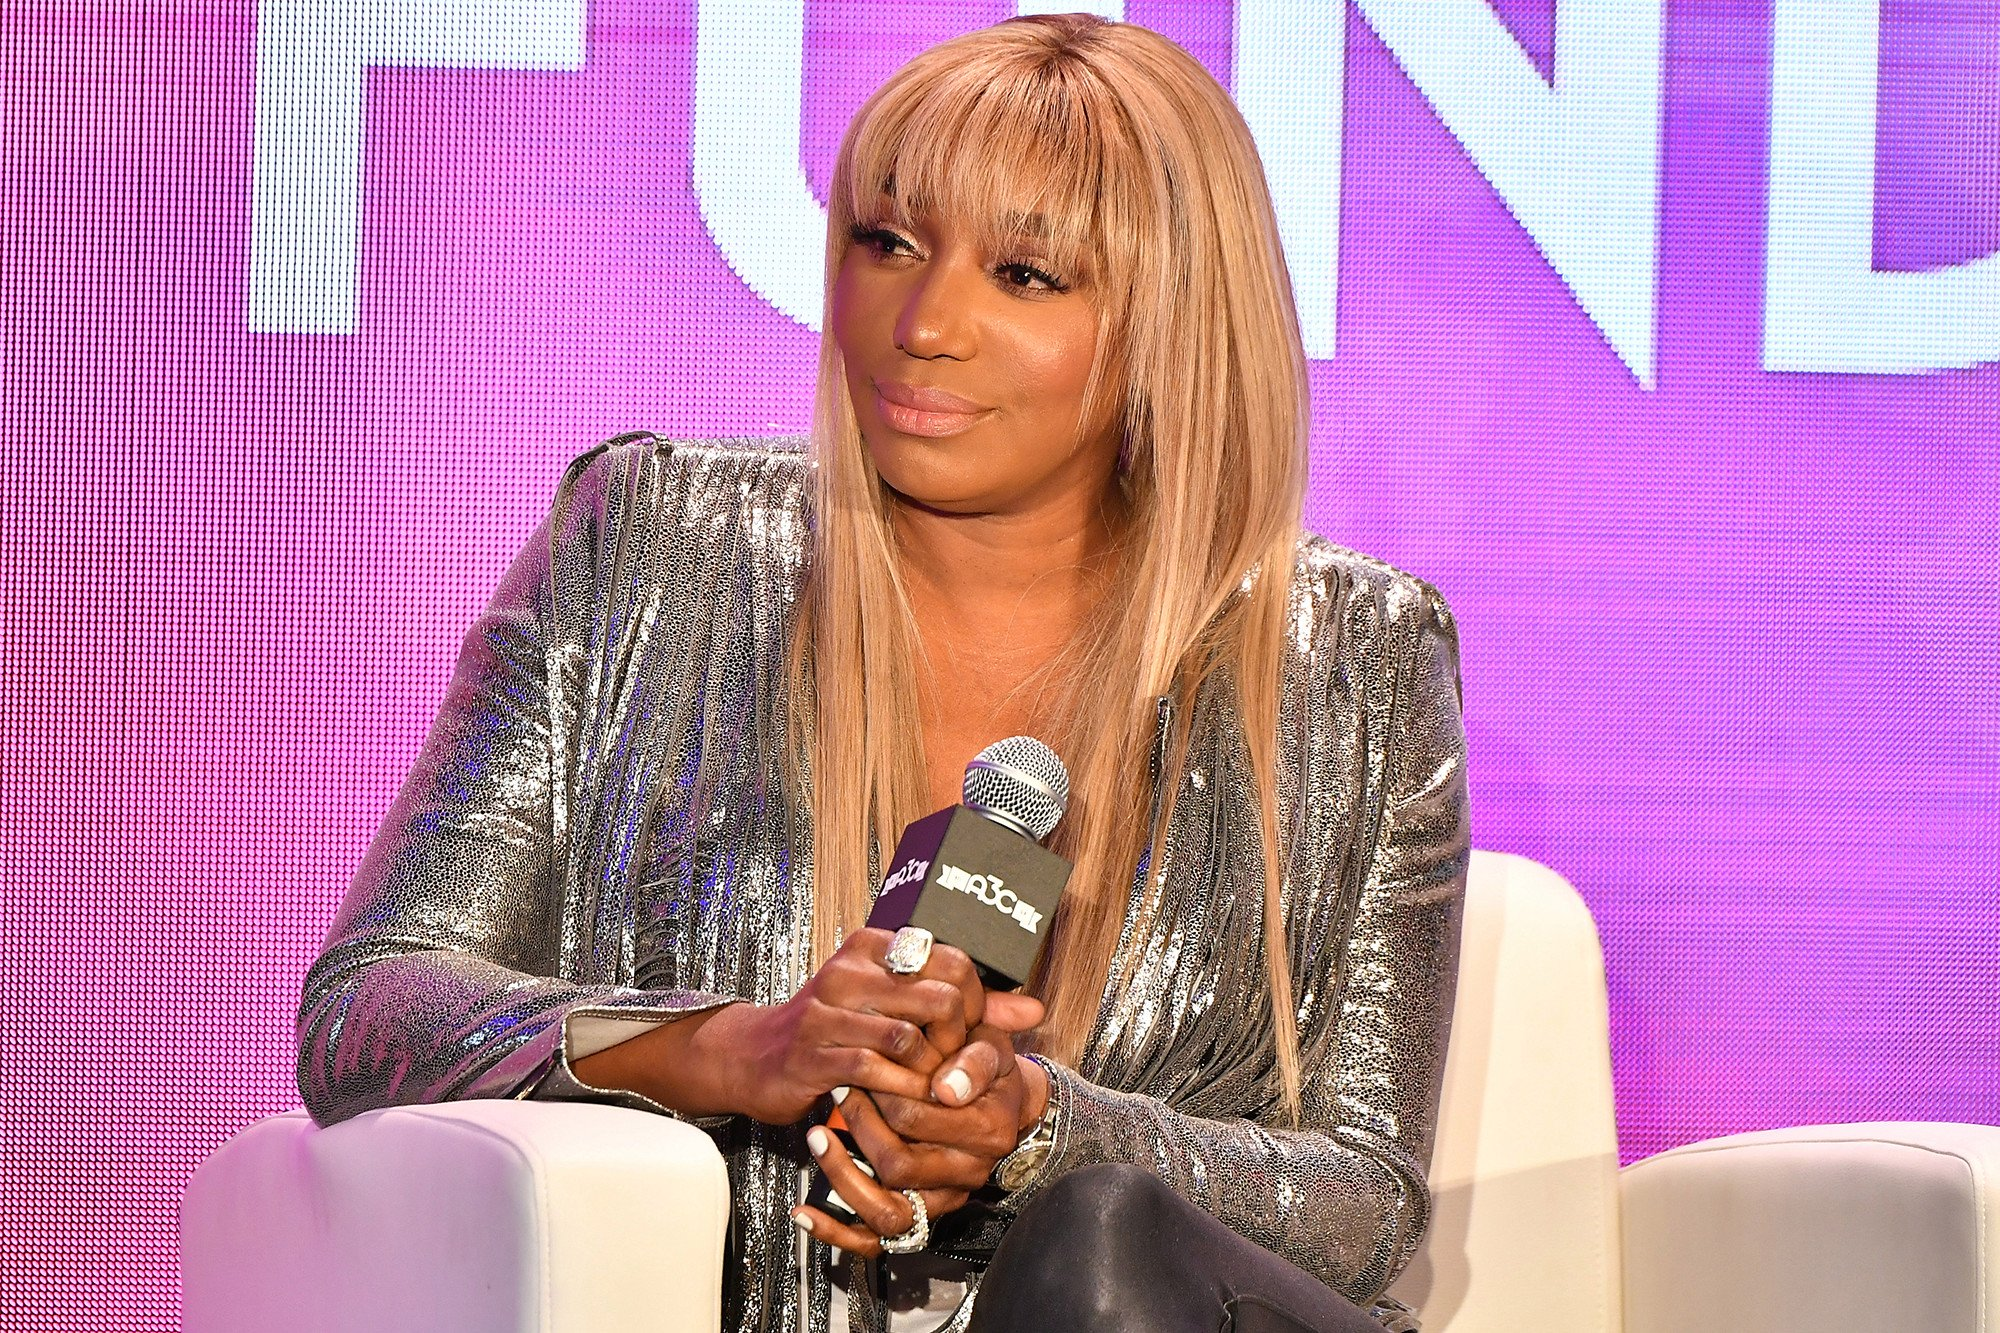 NeNe Leakes Is Serving Looks And Issues A New Reminder For Fans – Some People Say She's Twinning With Tamar Braxton